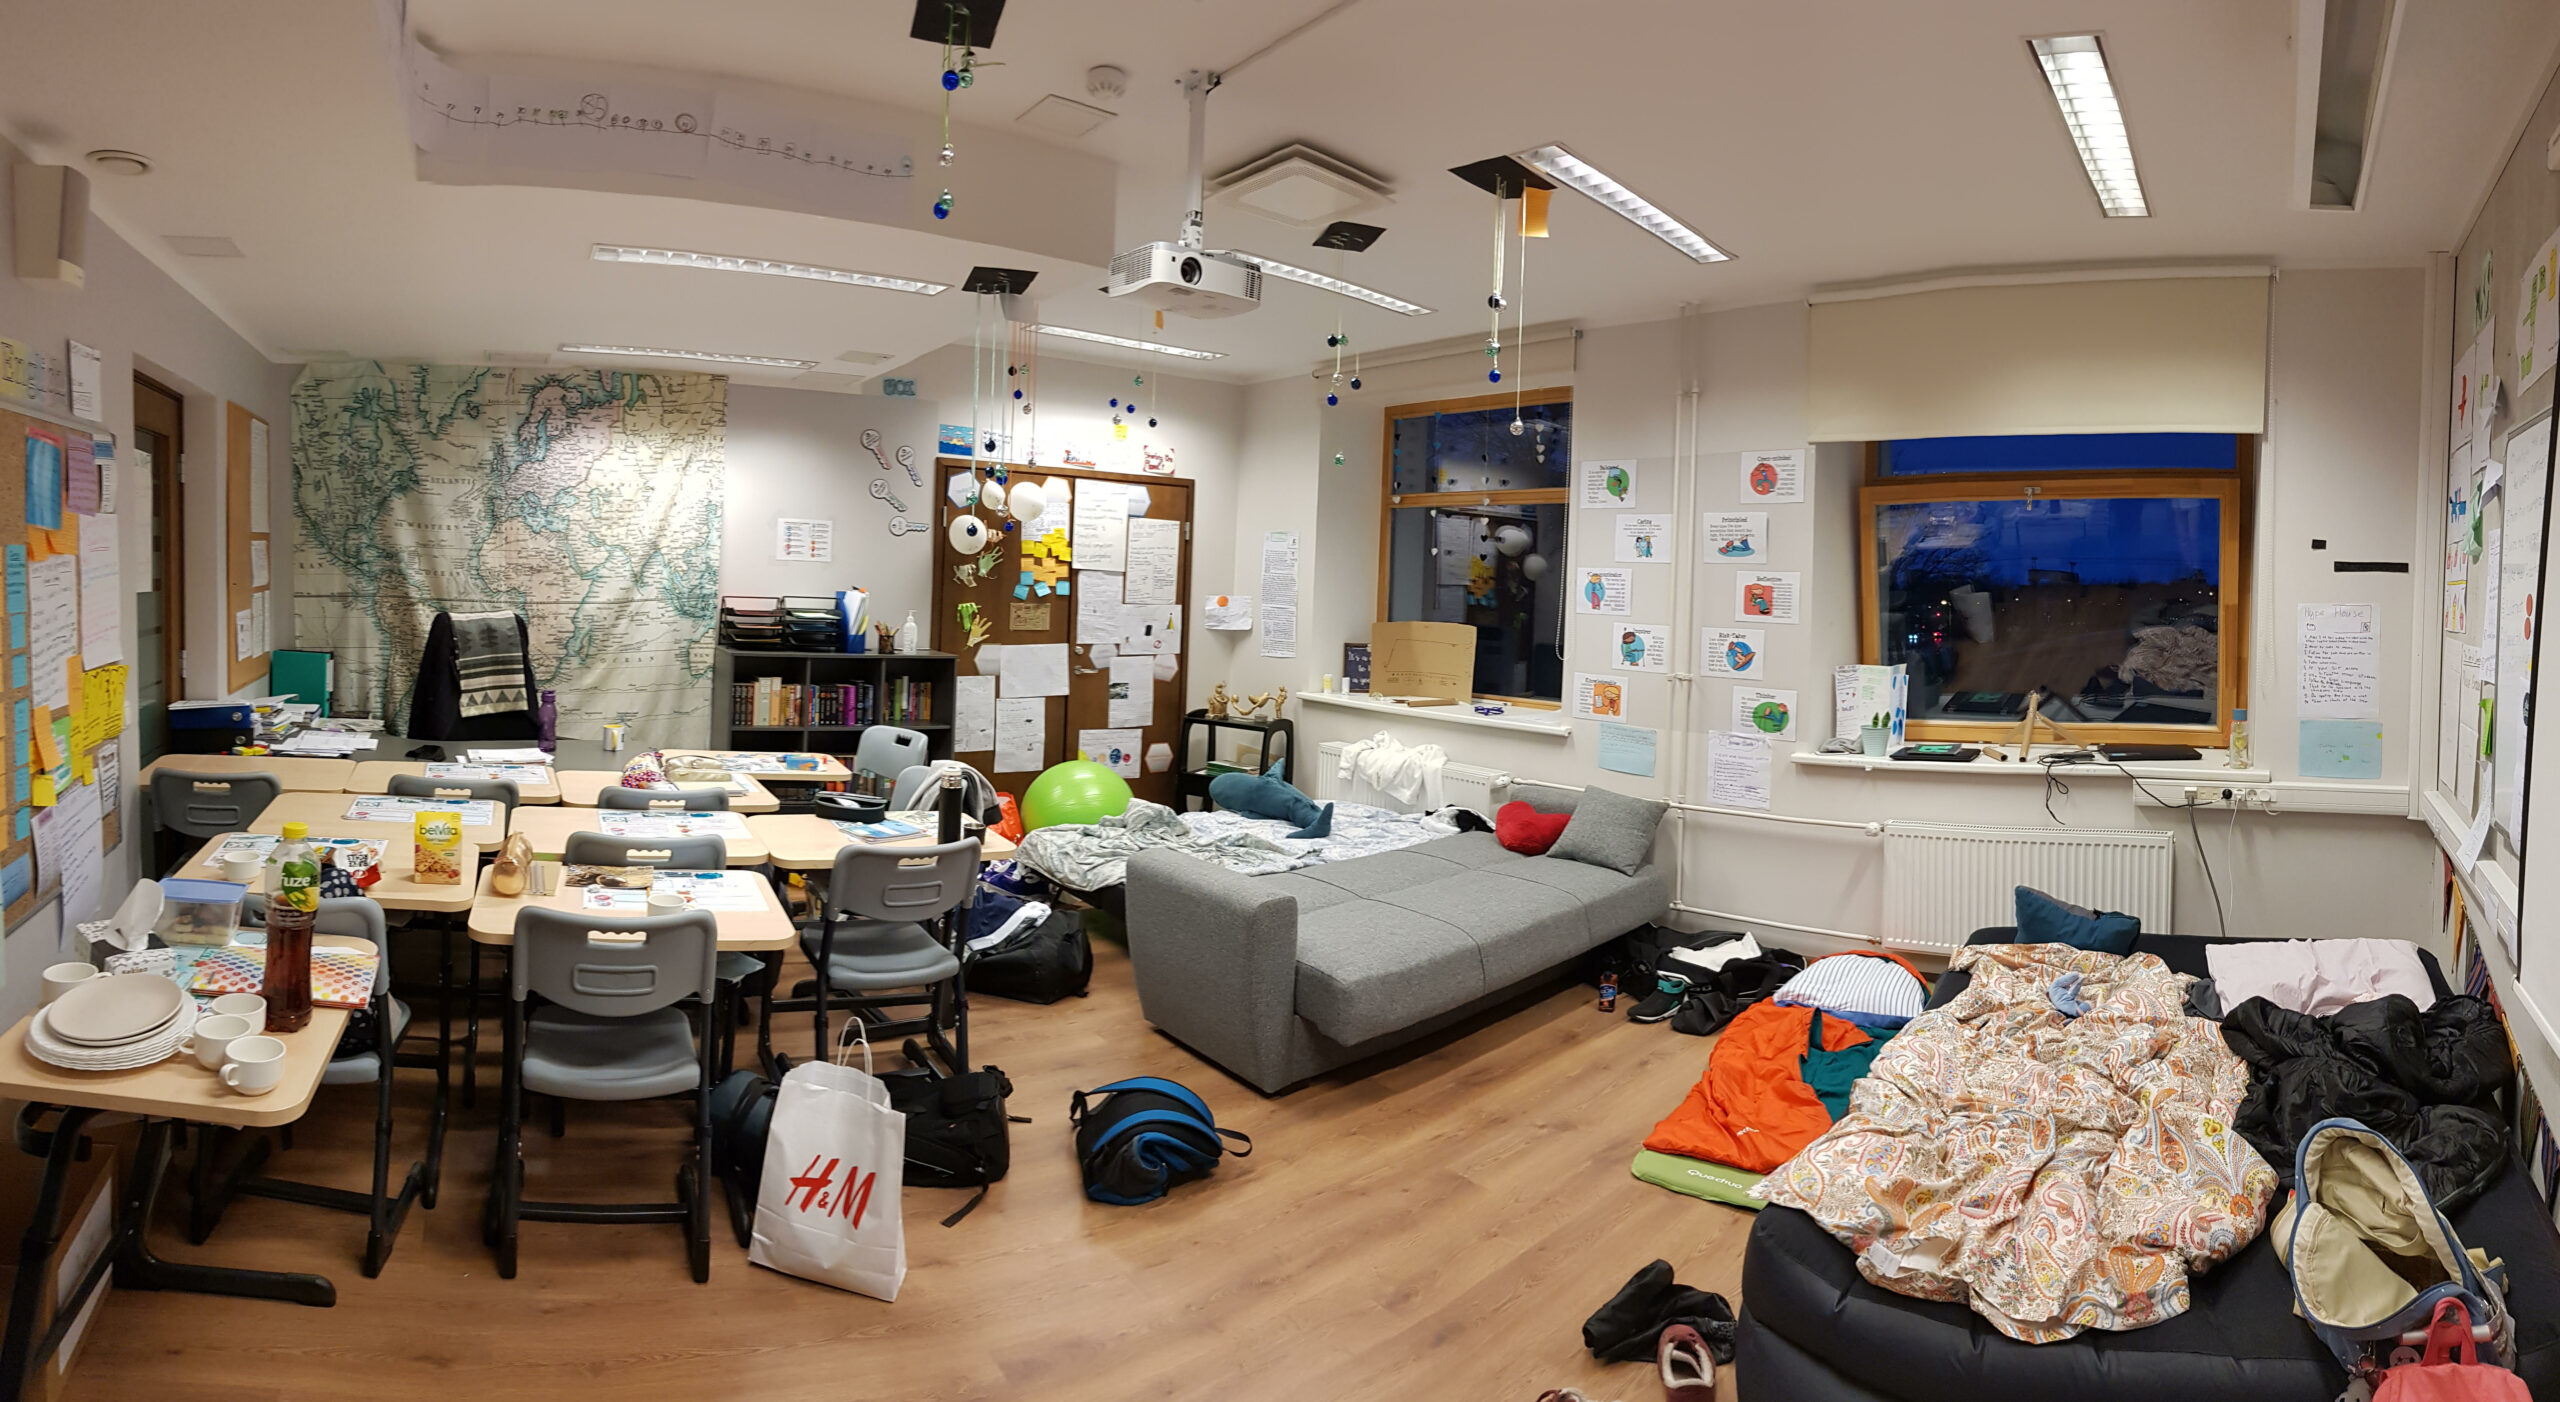 Transforming Learning Spaces through Imagination